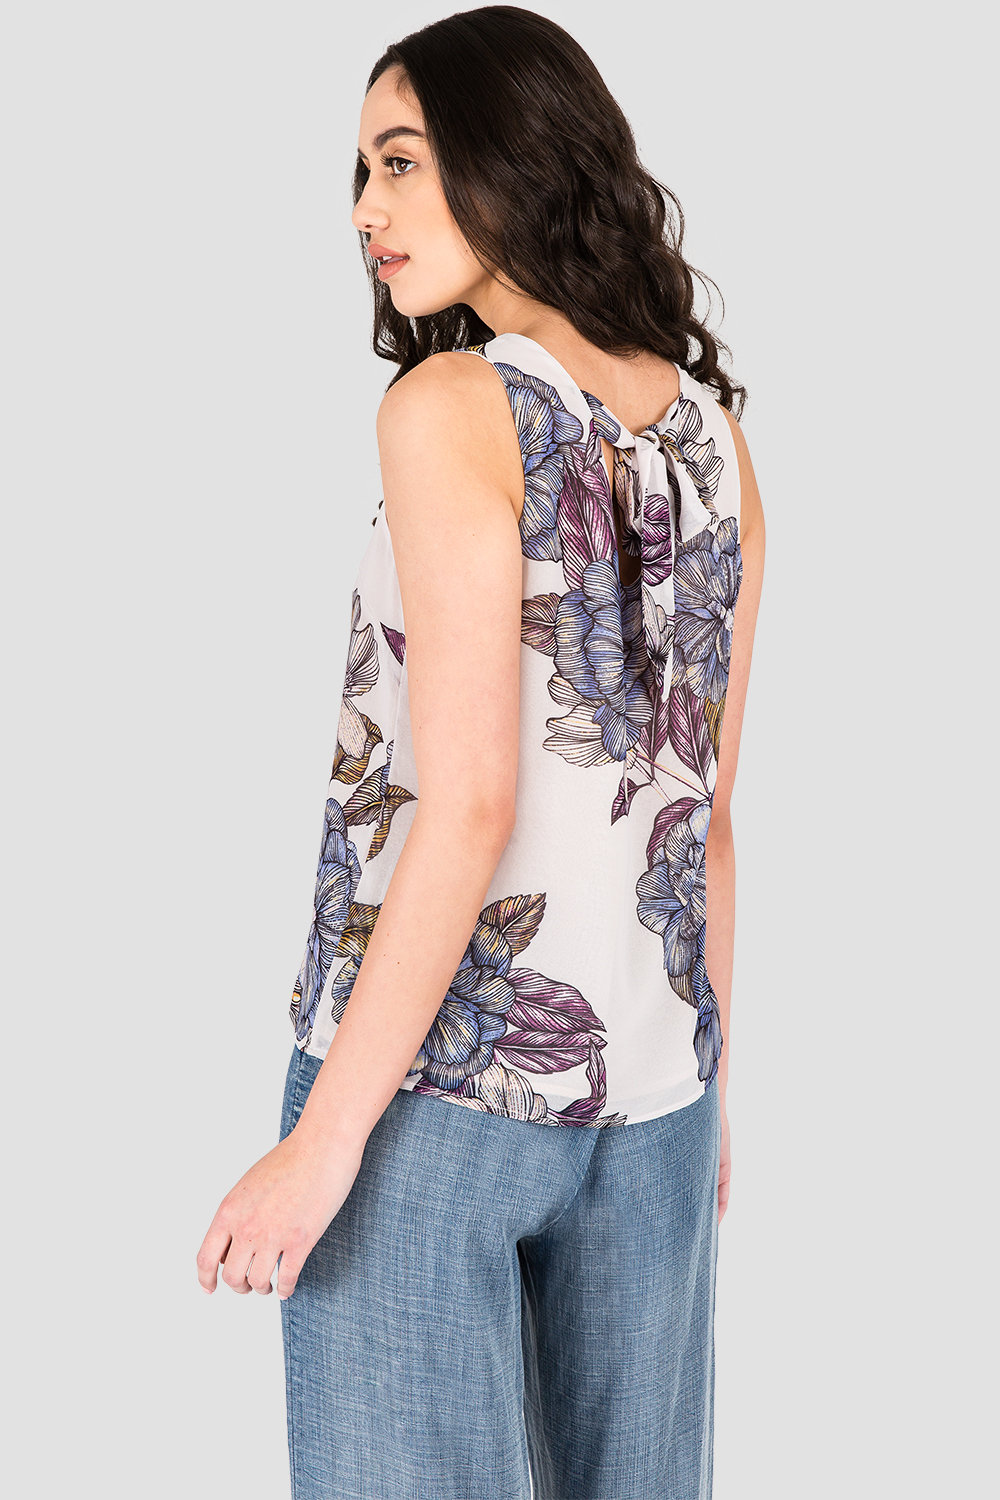 Standards & Practices Women's Gray Floral Print Chiffon Sleeveless Tie V-Back Top